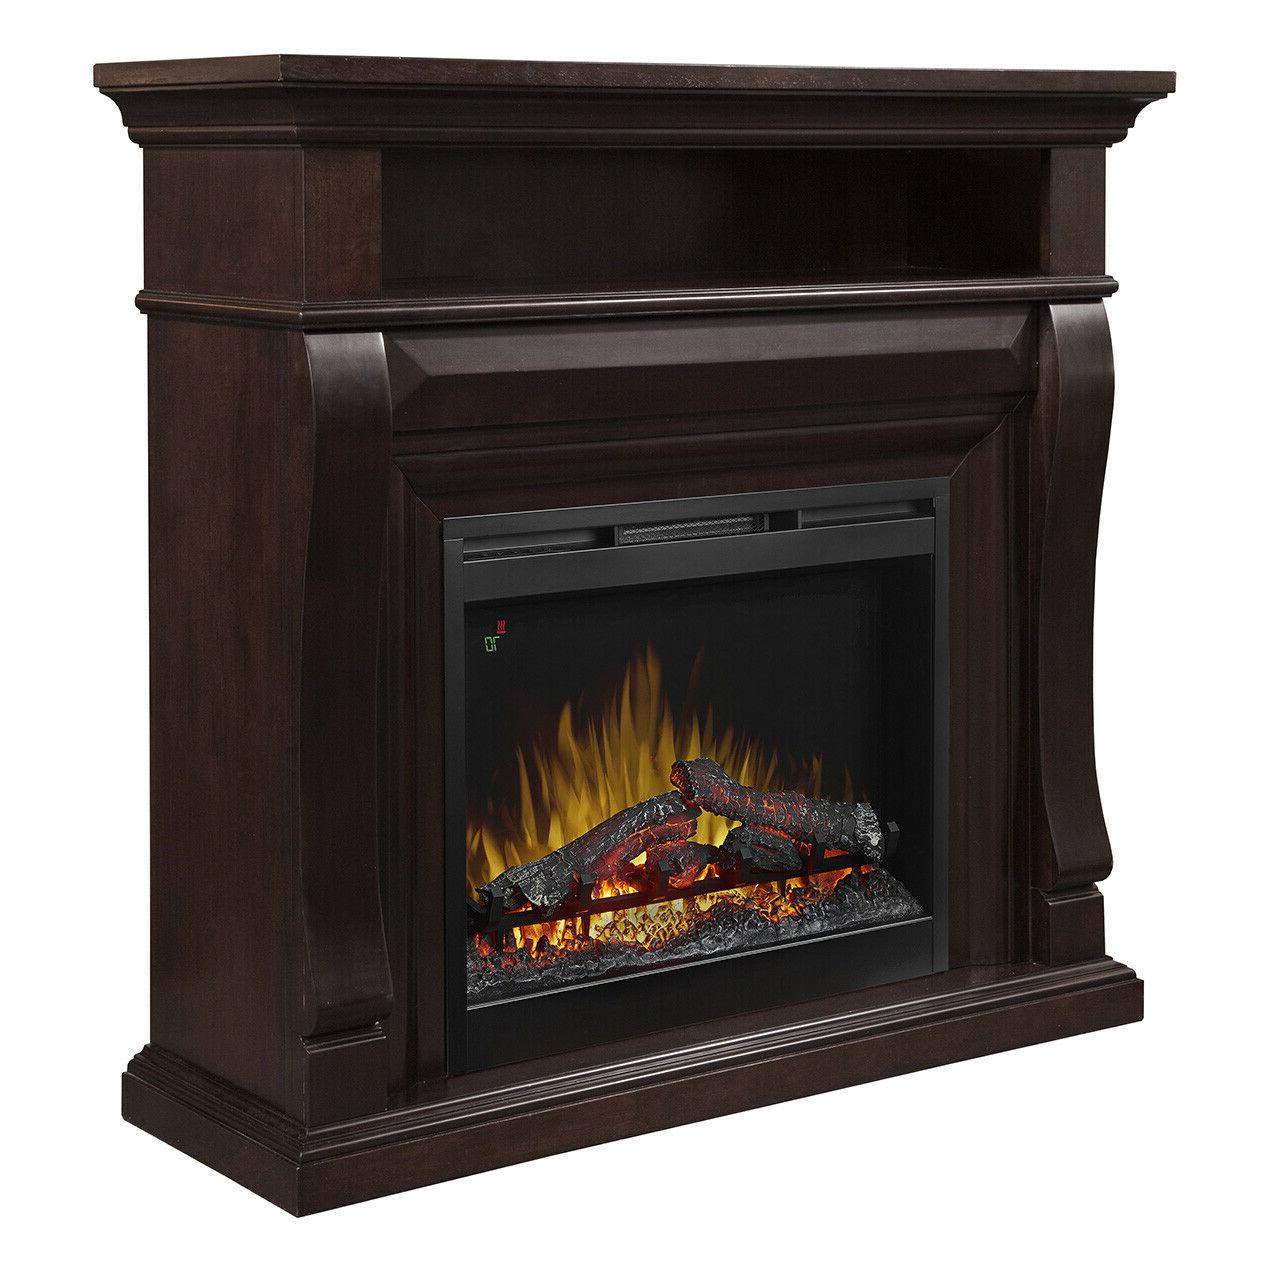 NEW! Dimplex Electric Fireplace / TV